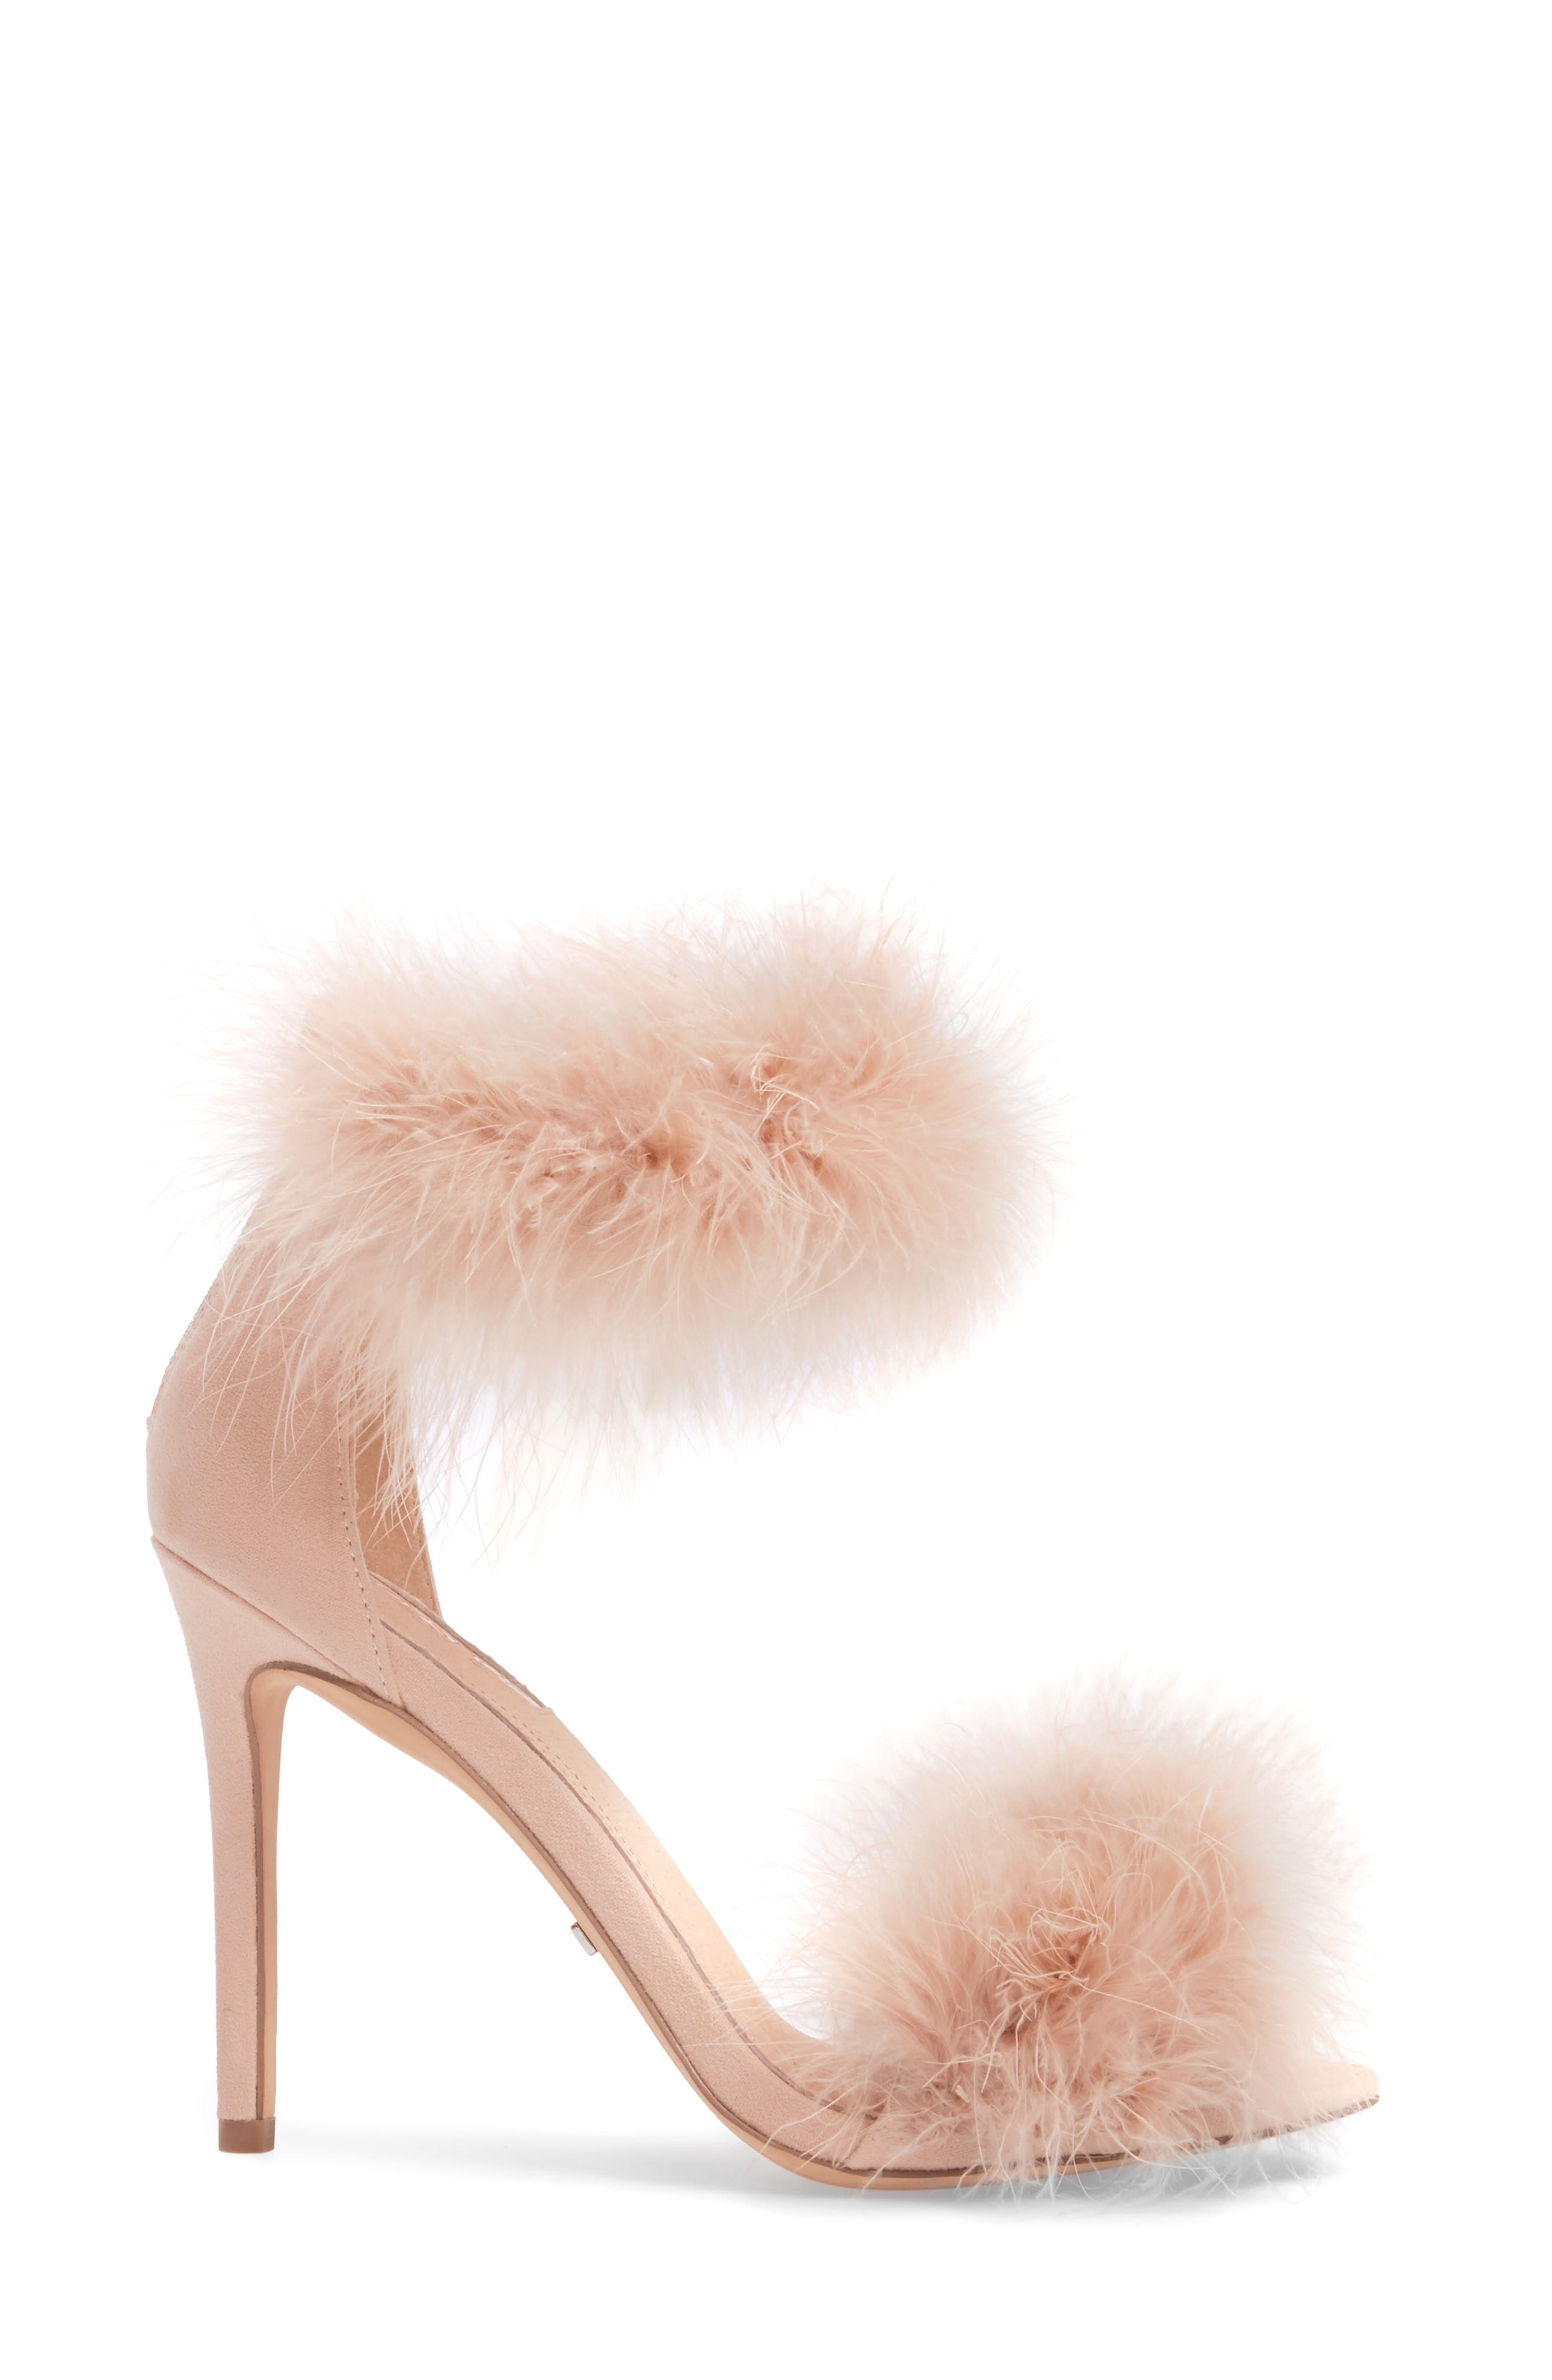 Feather Strap Sandal,                             Alternate thumbnail 3, color,                             Nude